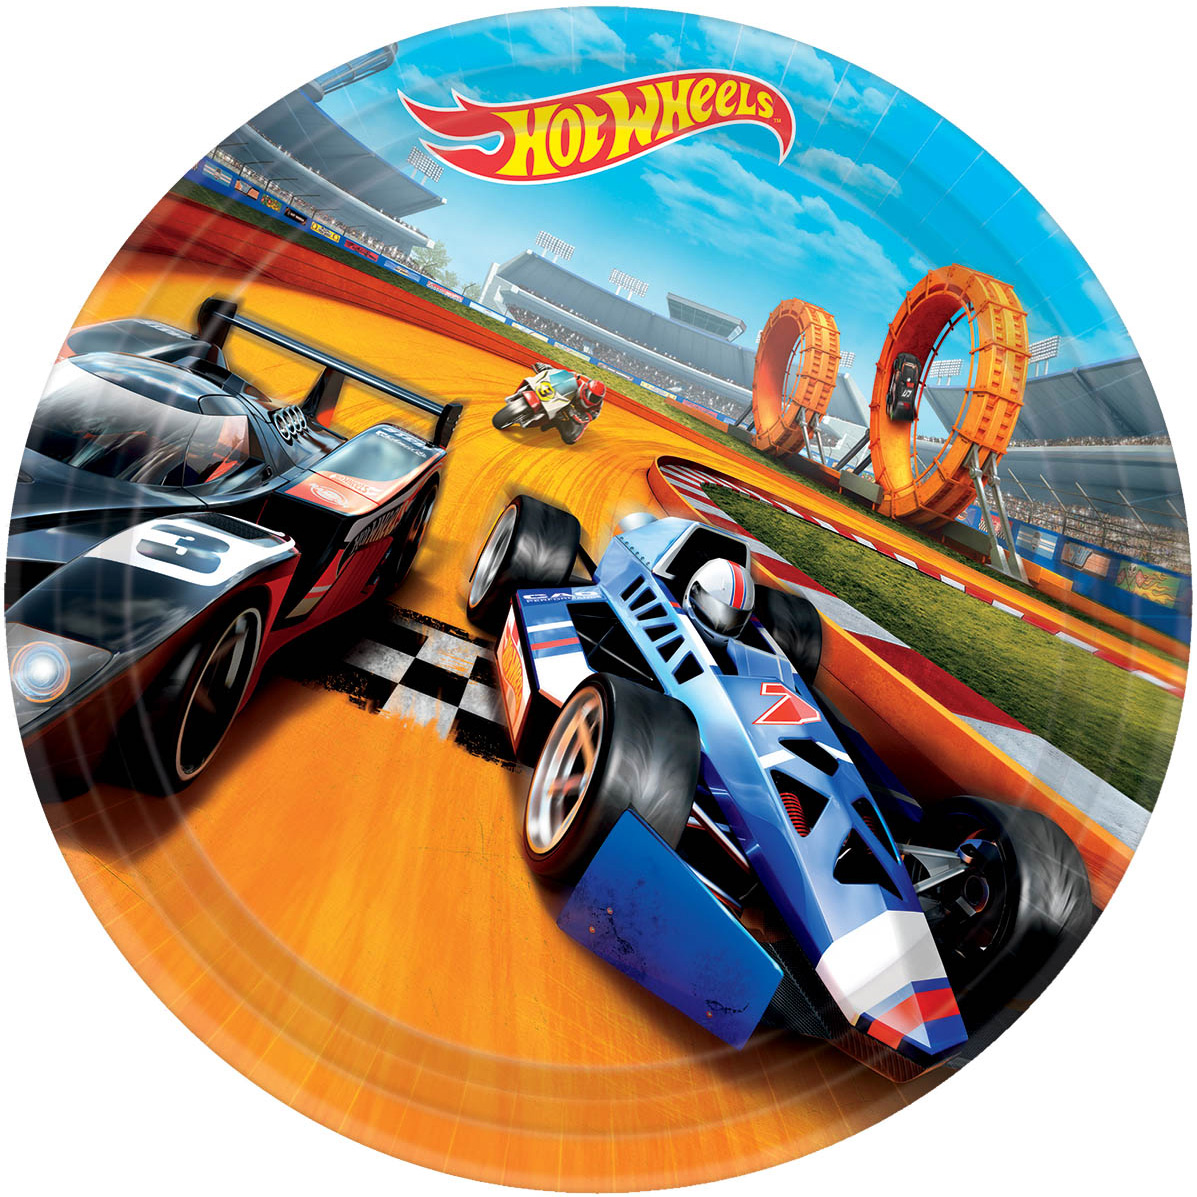 "Hot Wheels Wild Racer 9"" Luncheon Plate (8 Count) BB551551"